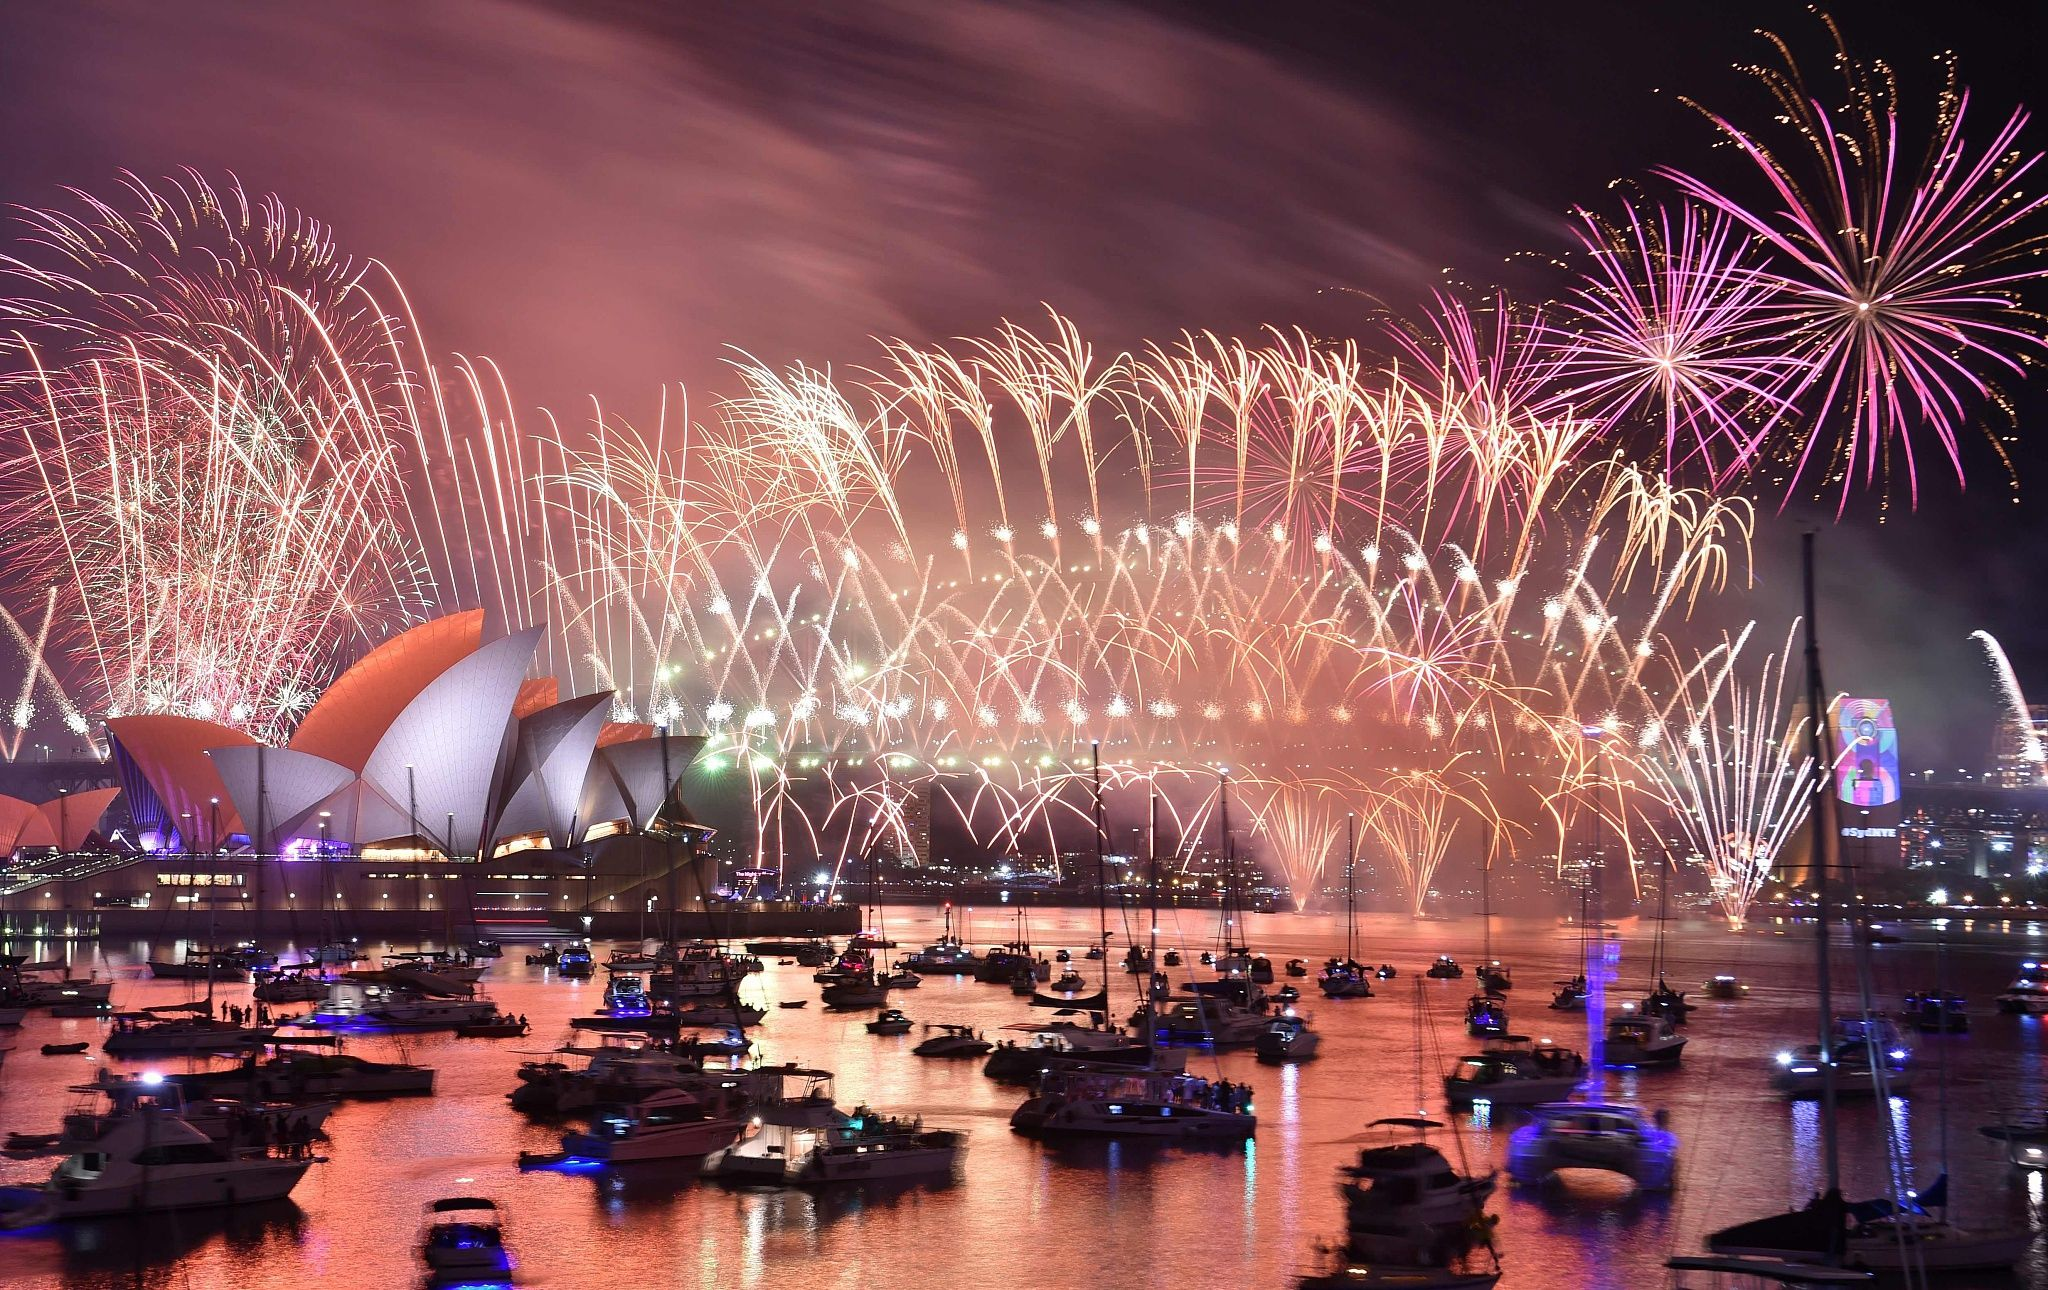 A Spectacular Firework Show Lit Up The Night Sky In Sydney As